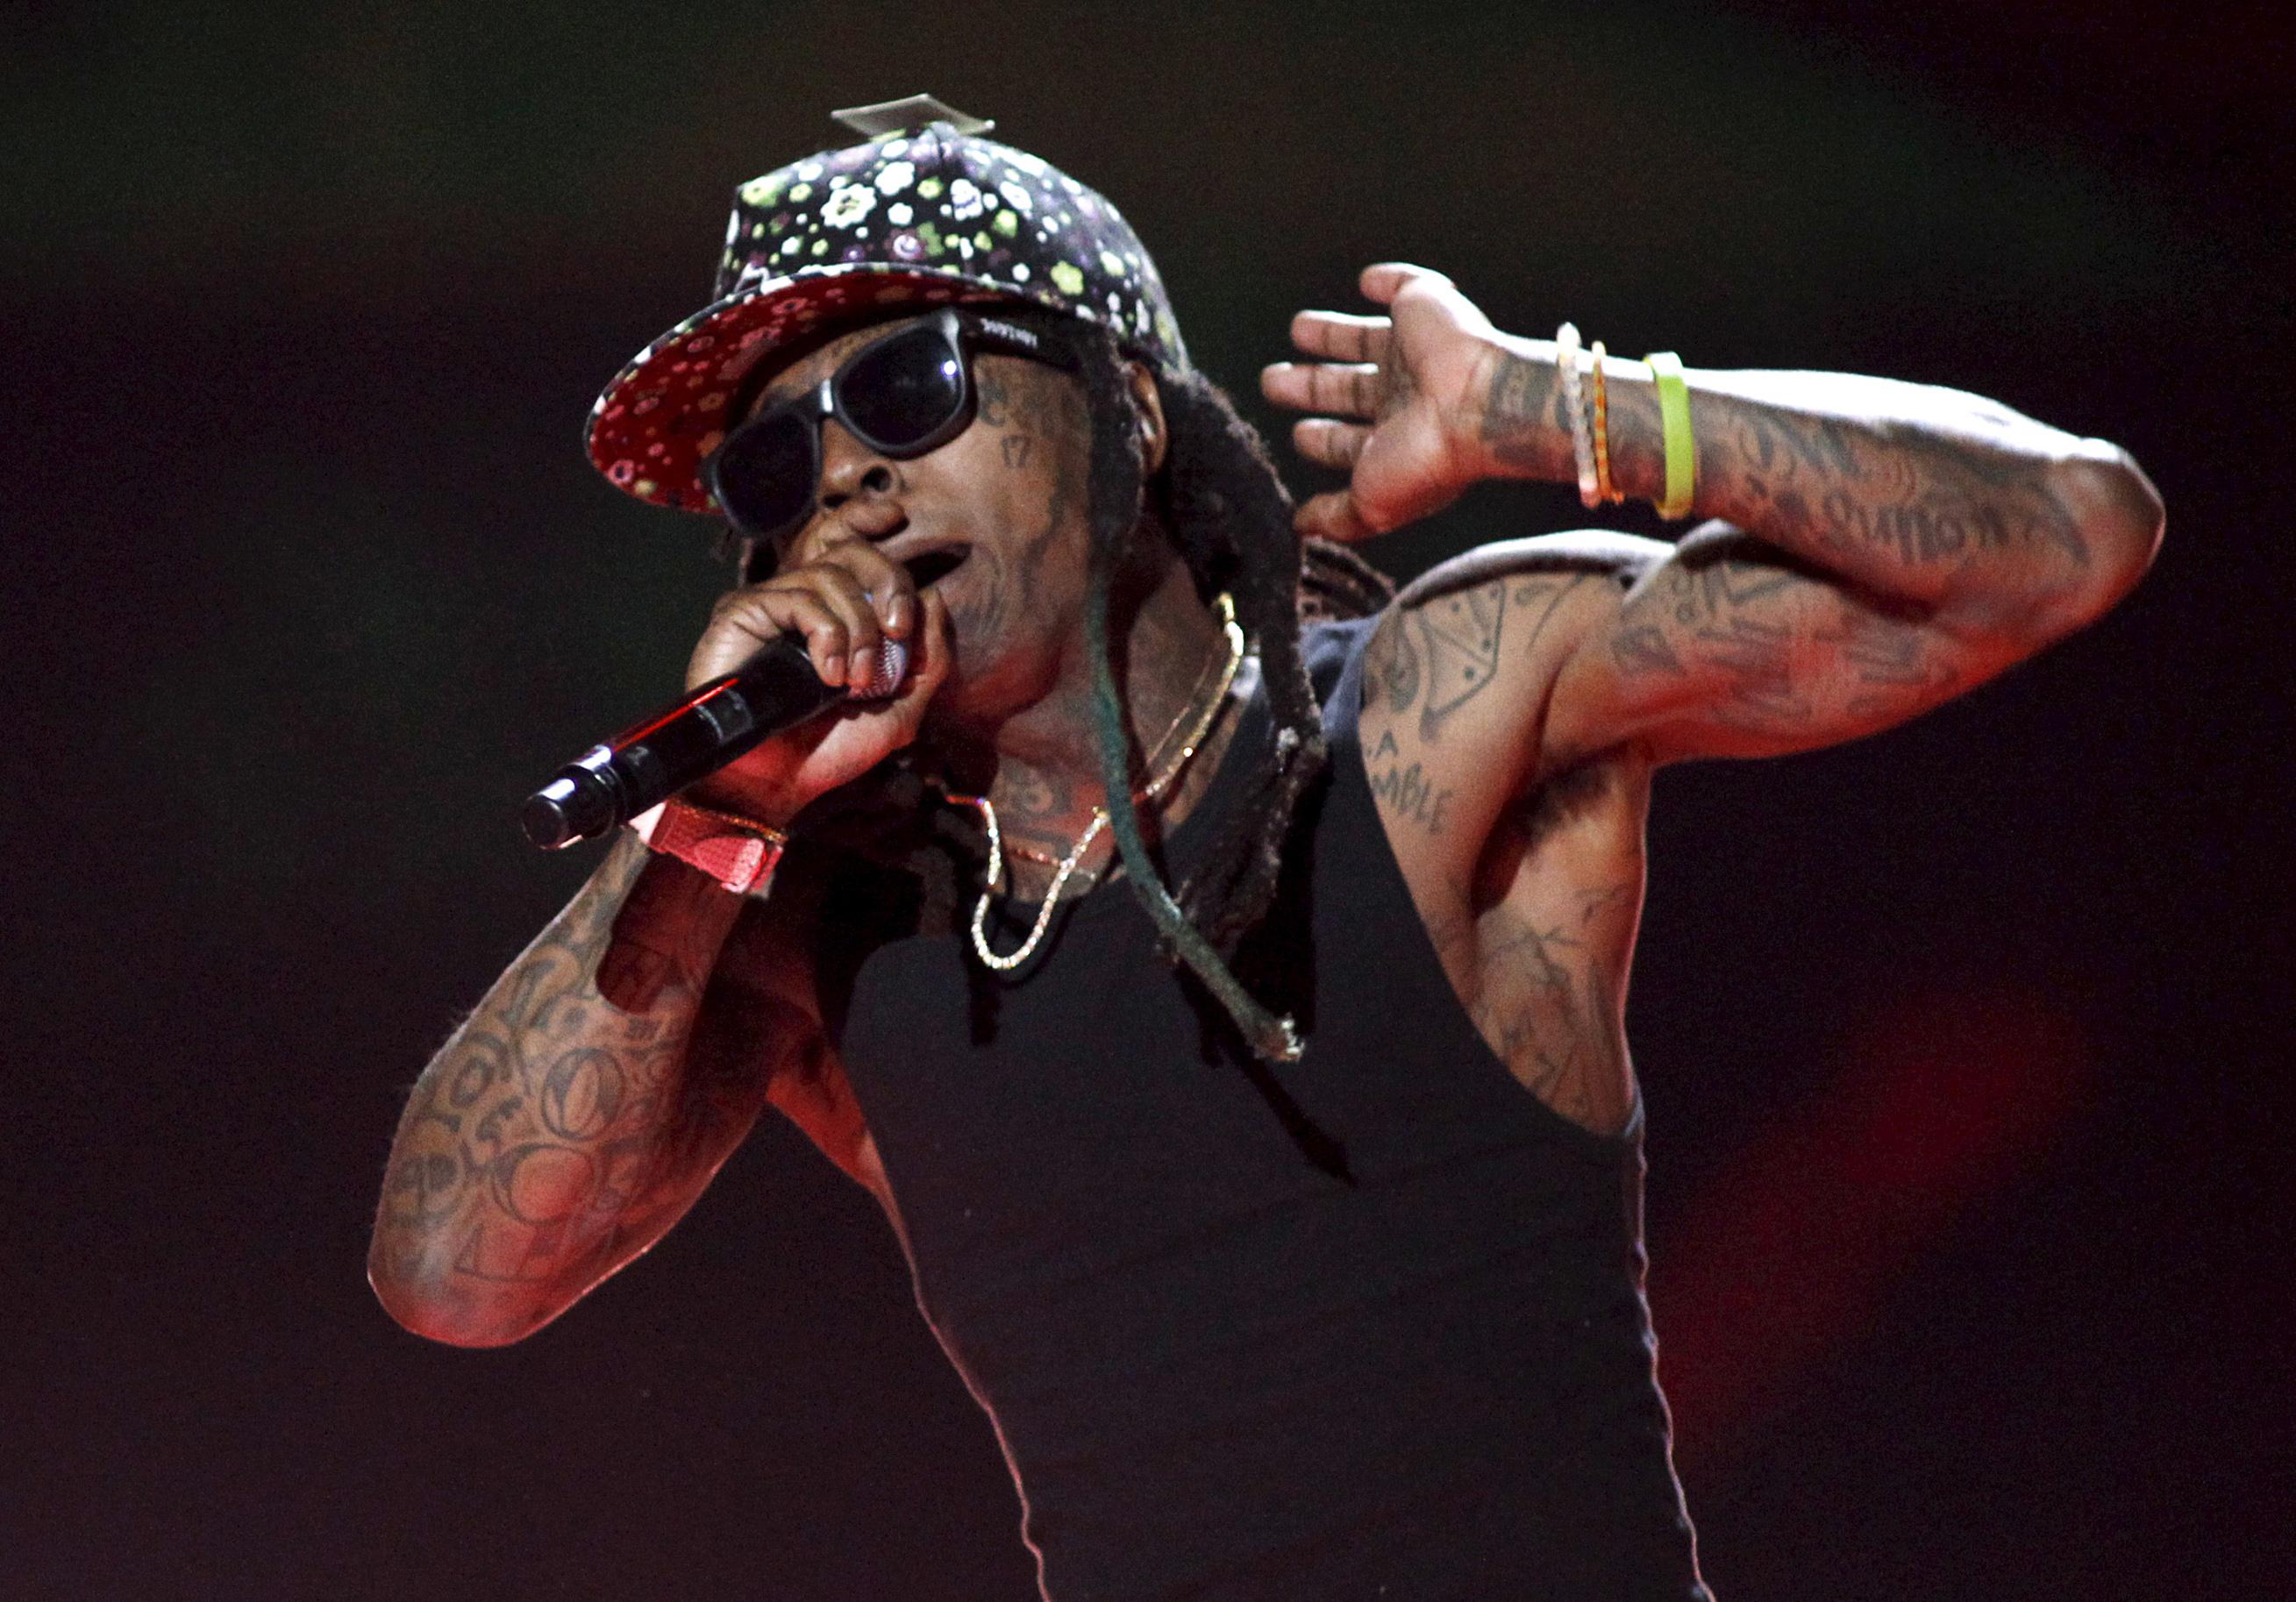 Lil Wayne on Roc Nation: 'I'm a Member of That Team Now'